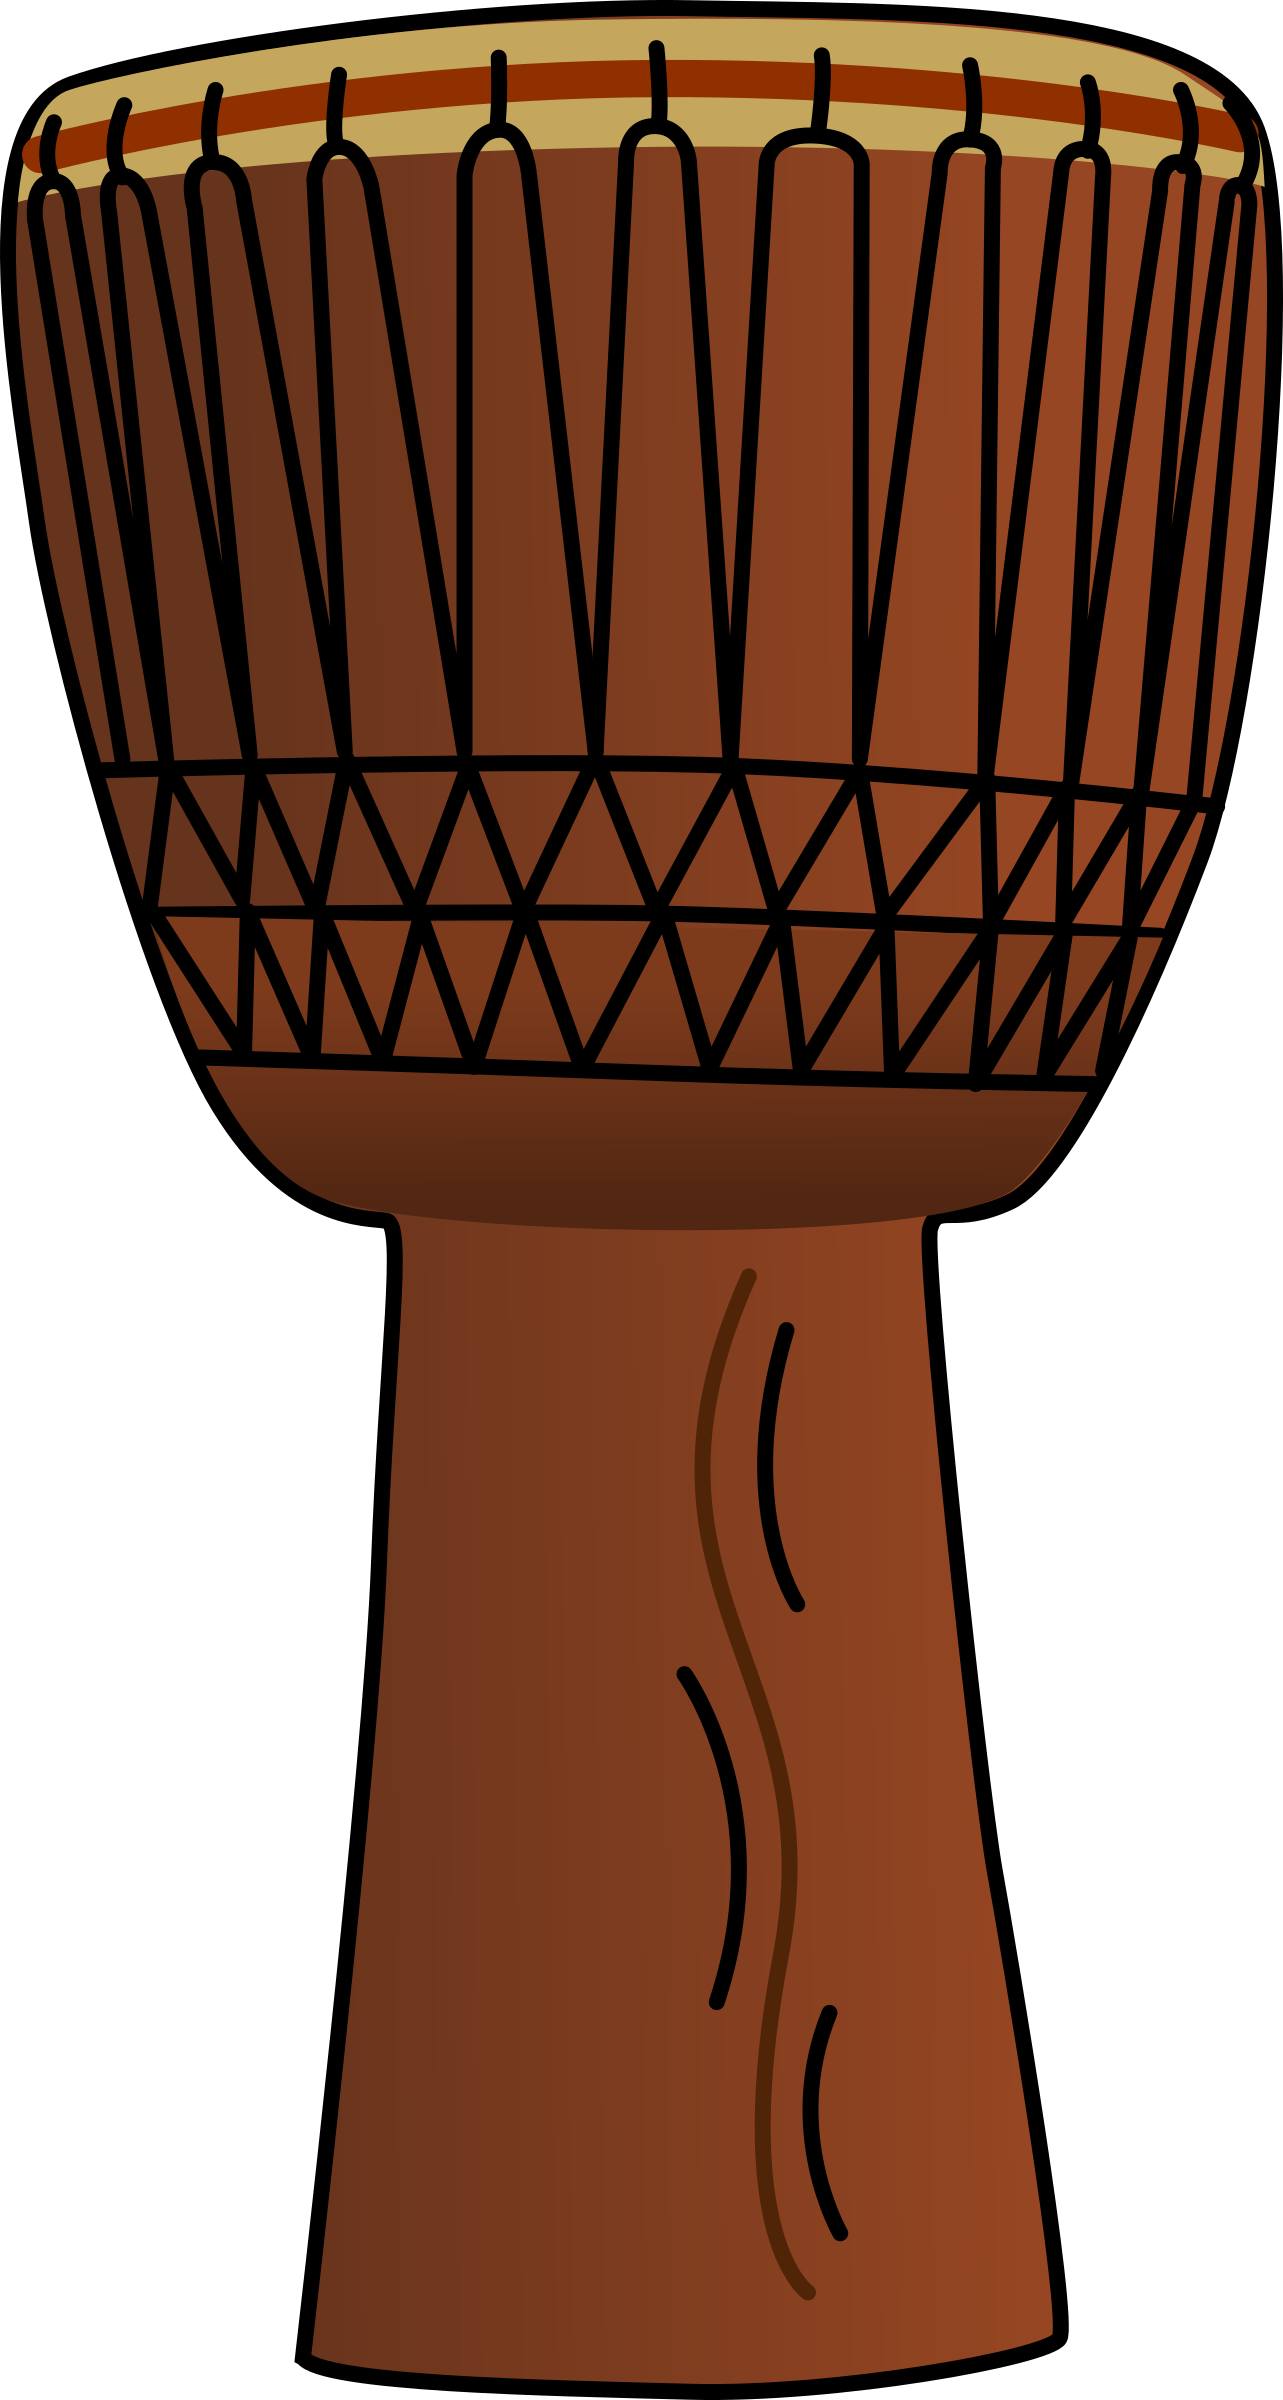 drums clipart marriage